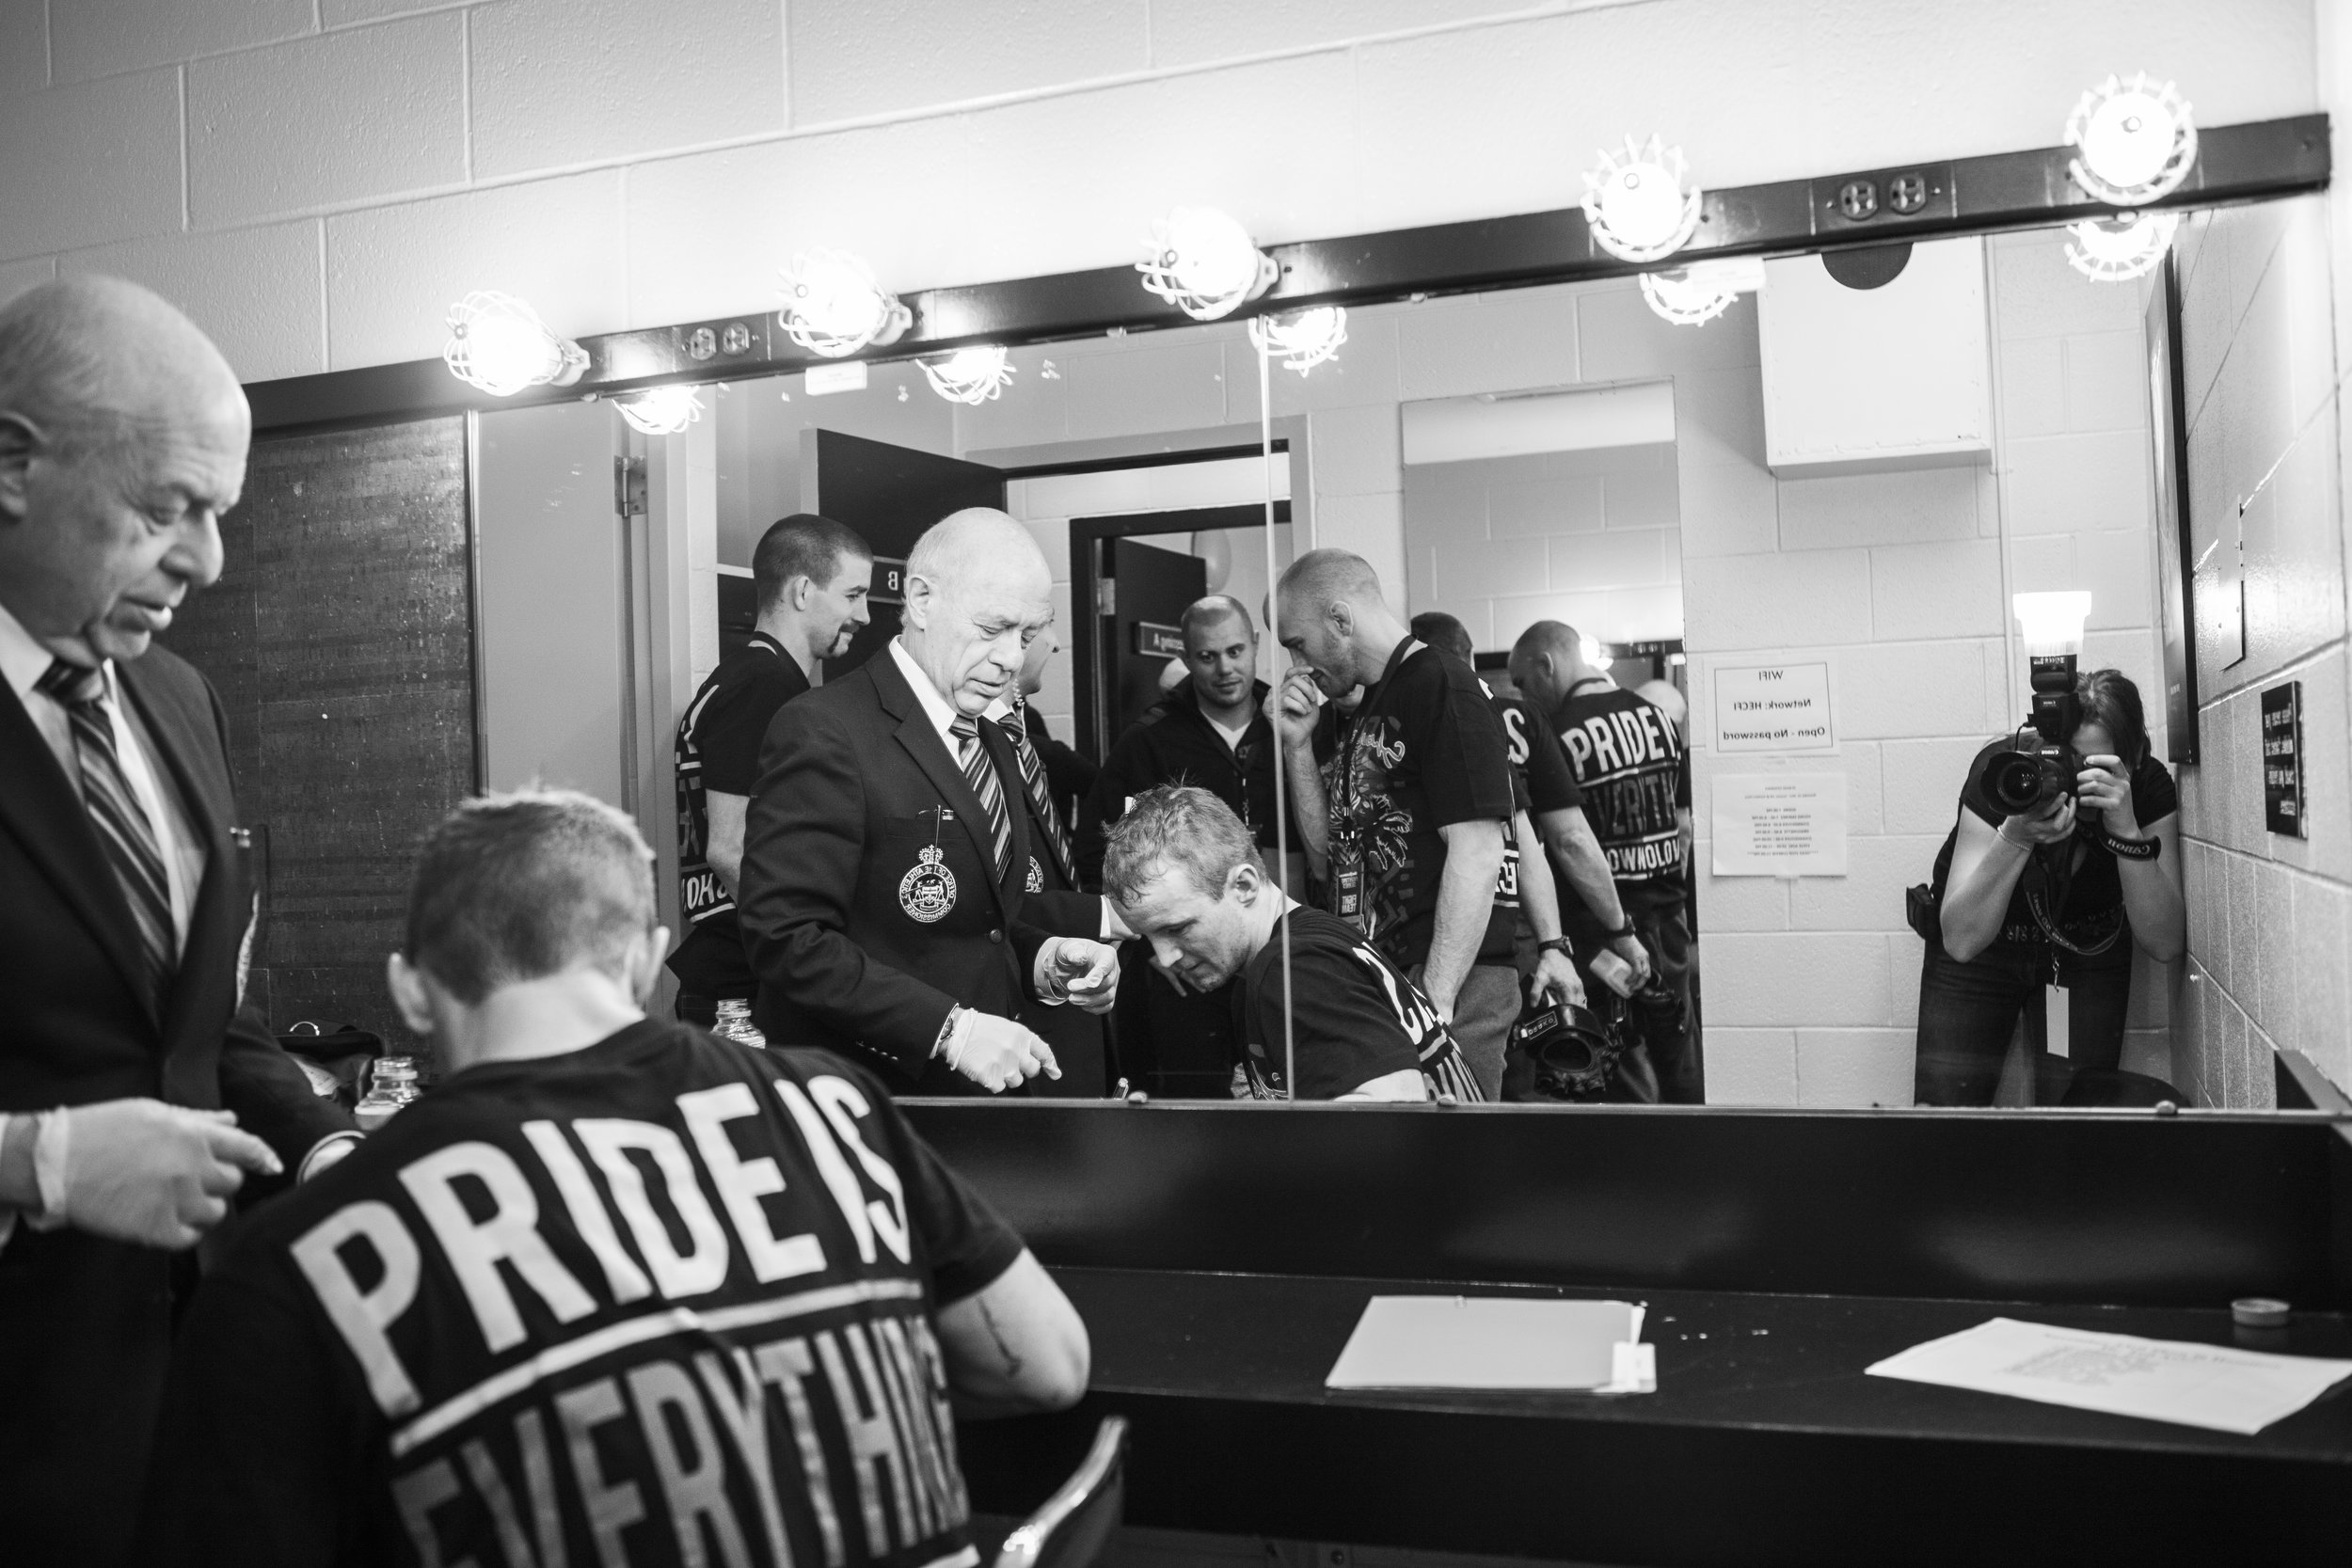 Image: Pride is Everything.  My Favourite accidental self portrait. This image was taken following a Score Fighting Series Event.